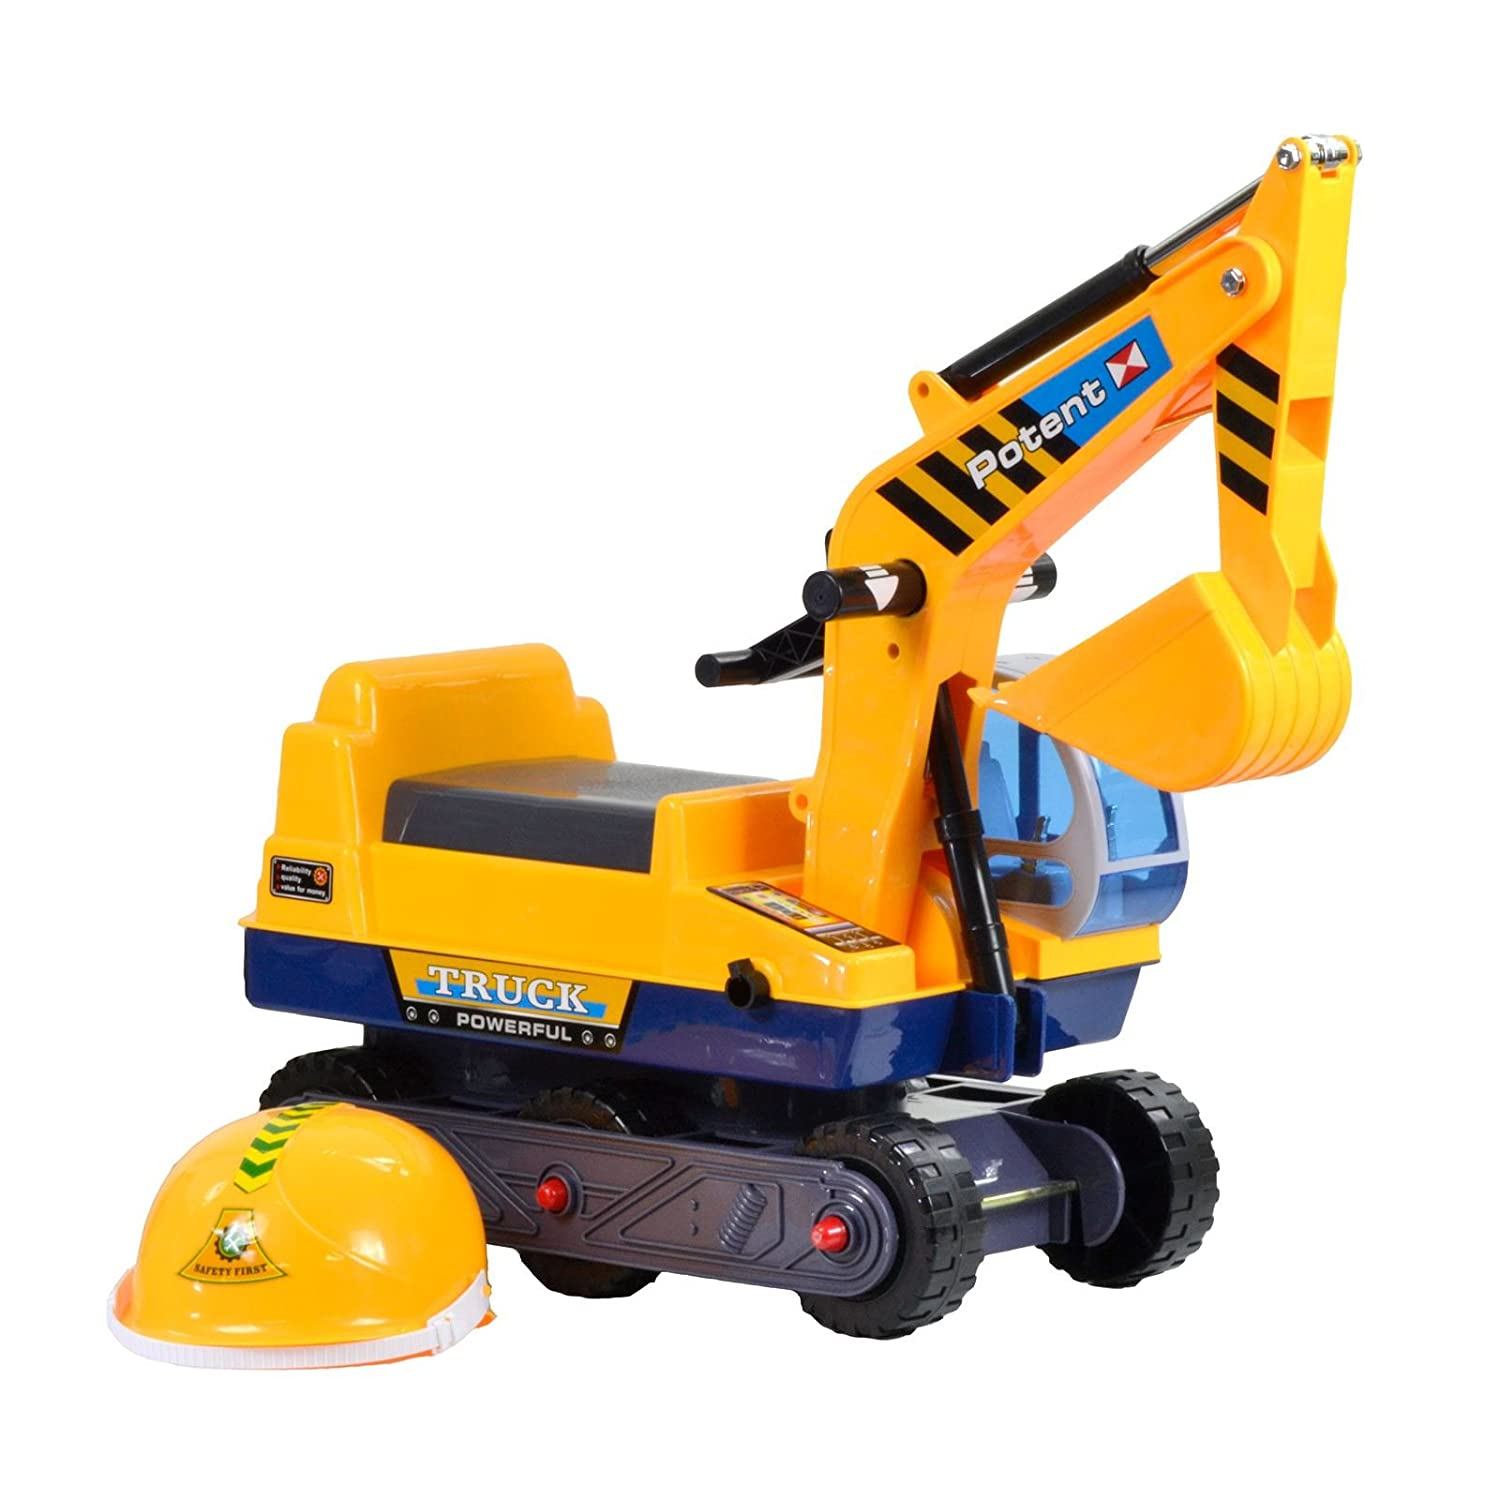 gernice children car ride on digger toys excavator truck toy for